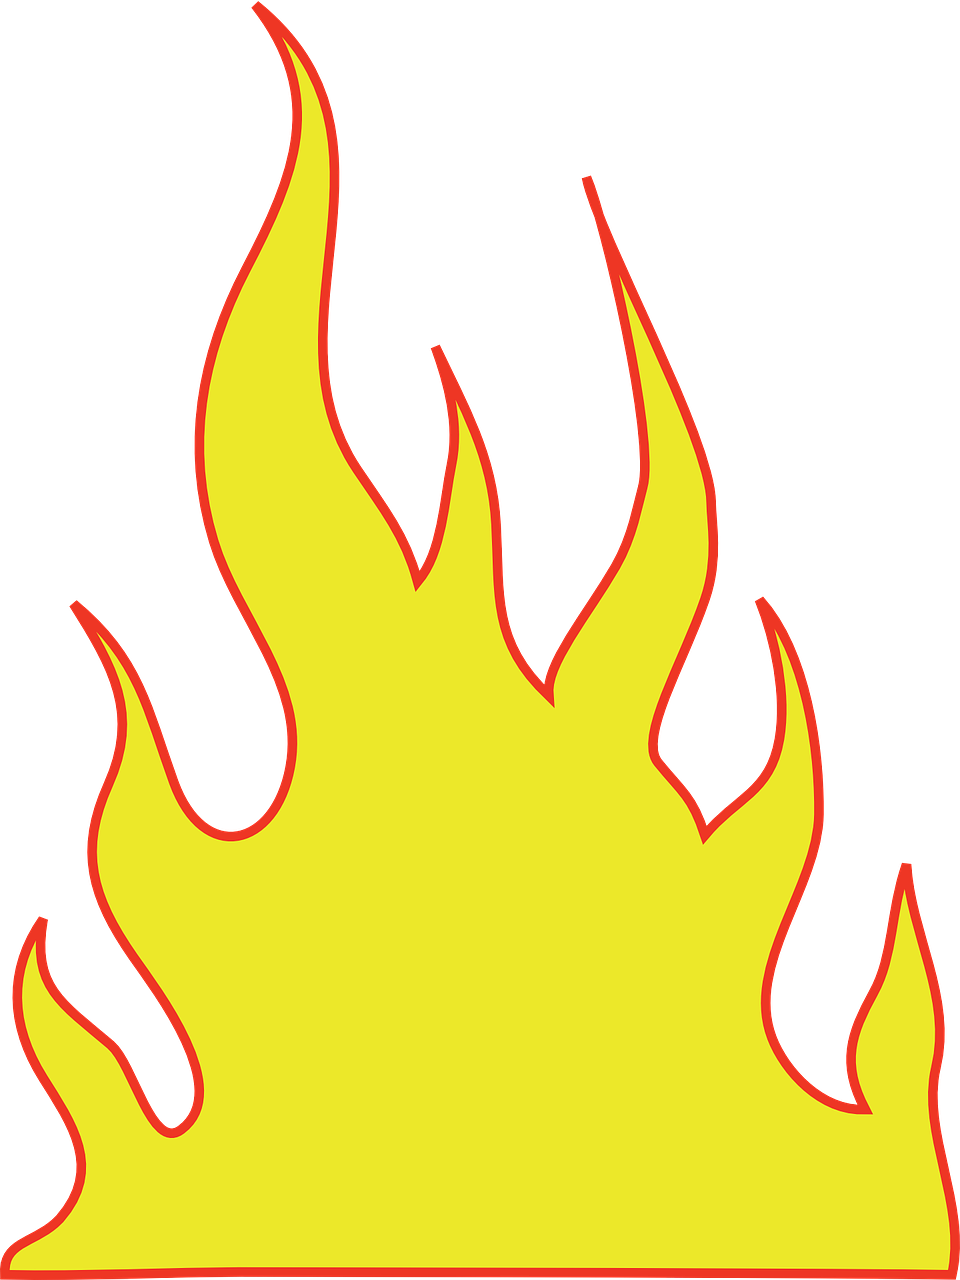 How to draw flames fire - free stencils 14